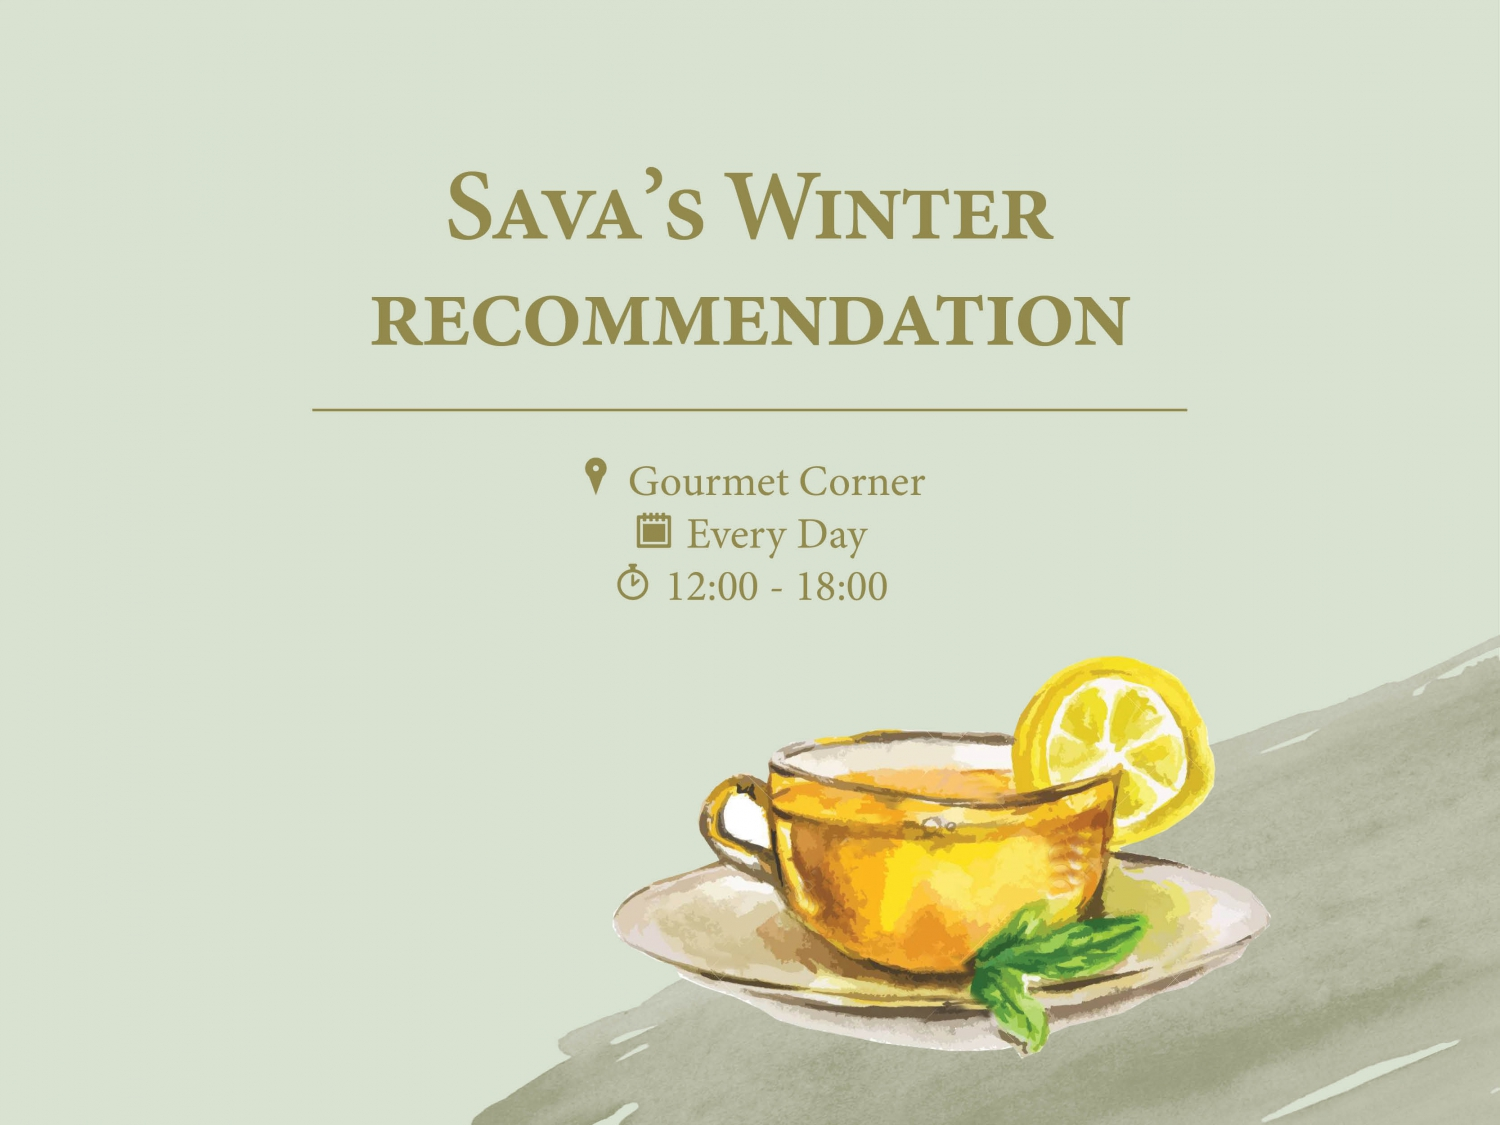 Sava's Winter Recommendation